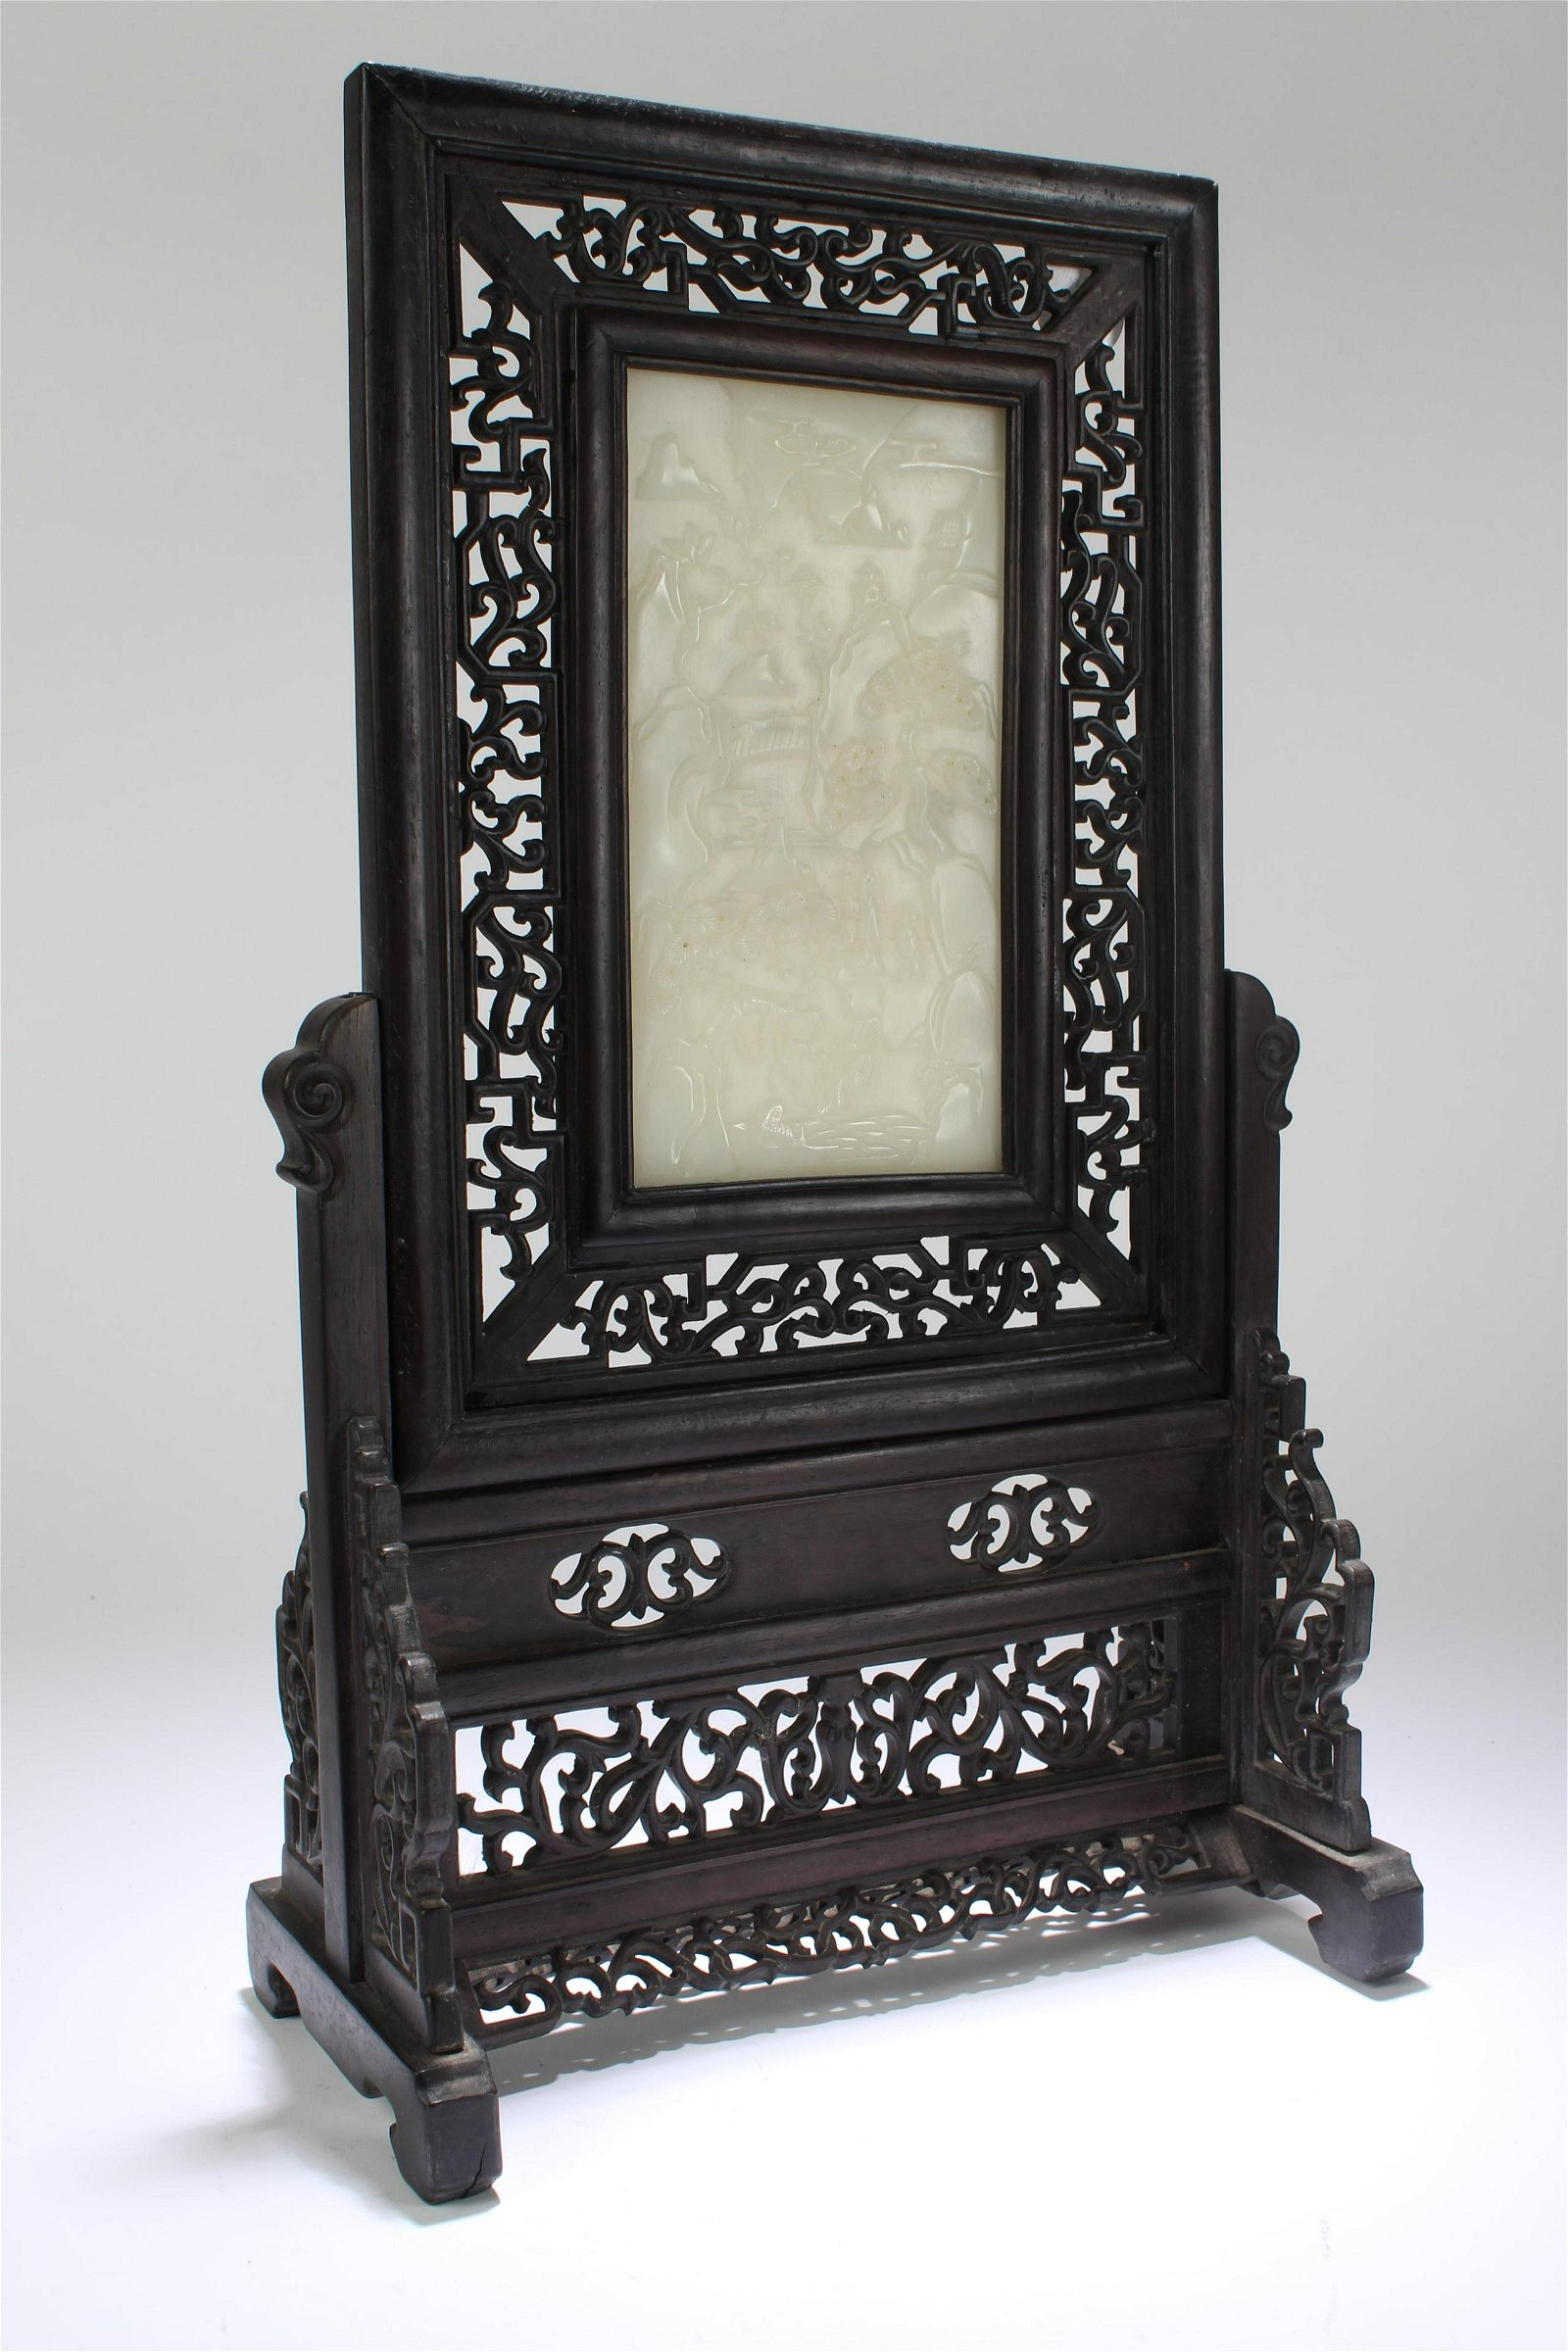 A Chinese Jade-inserted Wooden TAB le Screen